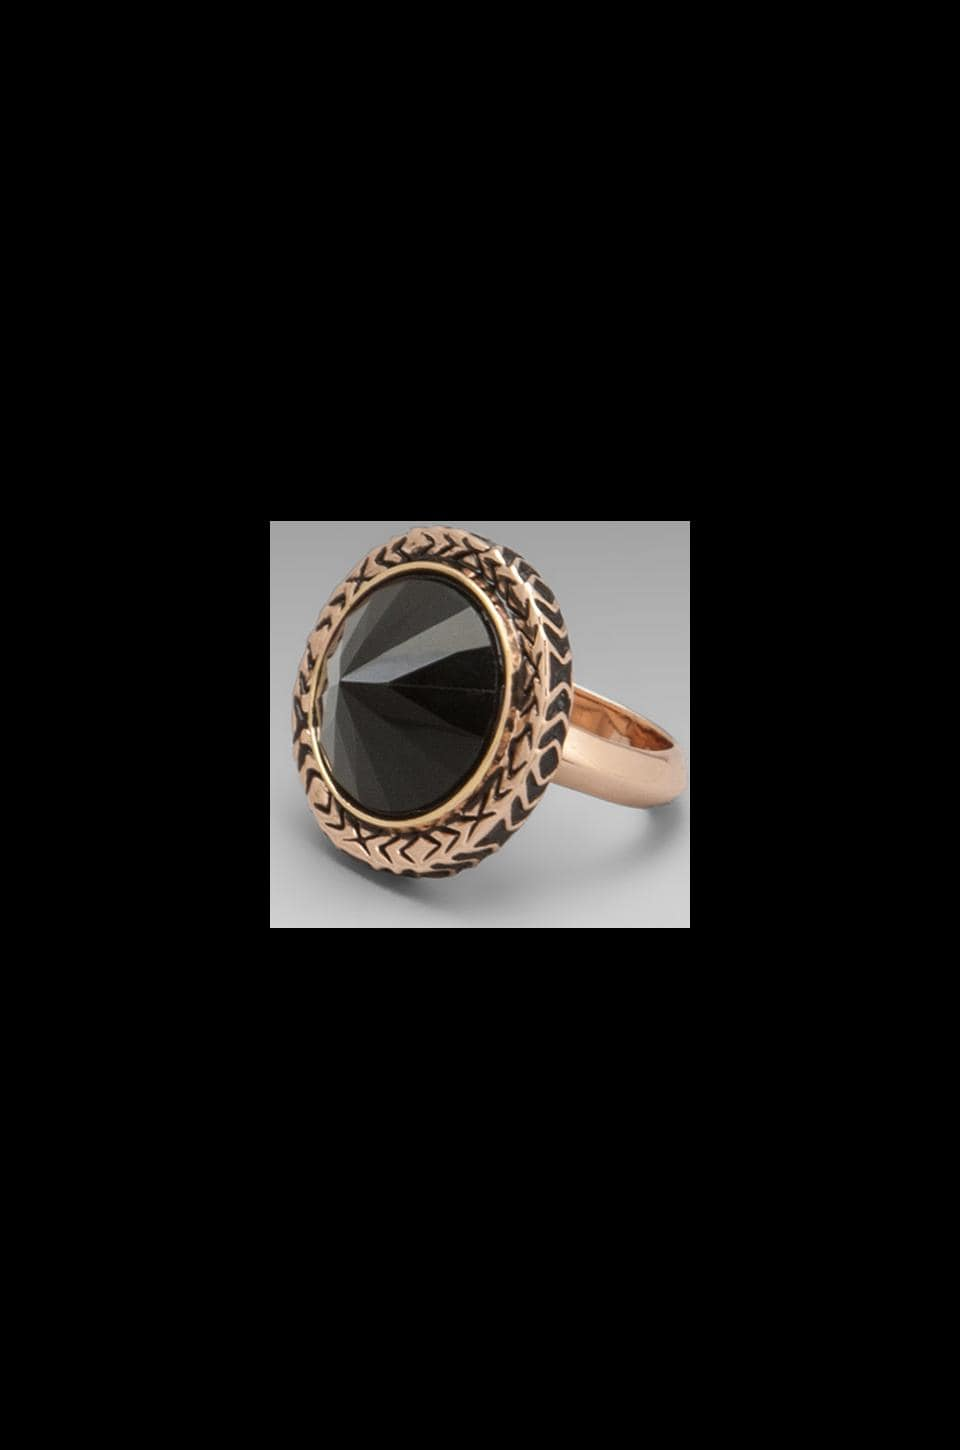 House of Harlow 1960 House of Harlow Scry Stone Ring in Rosegold